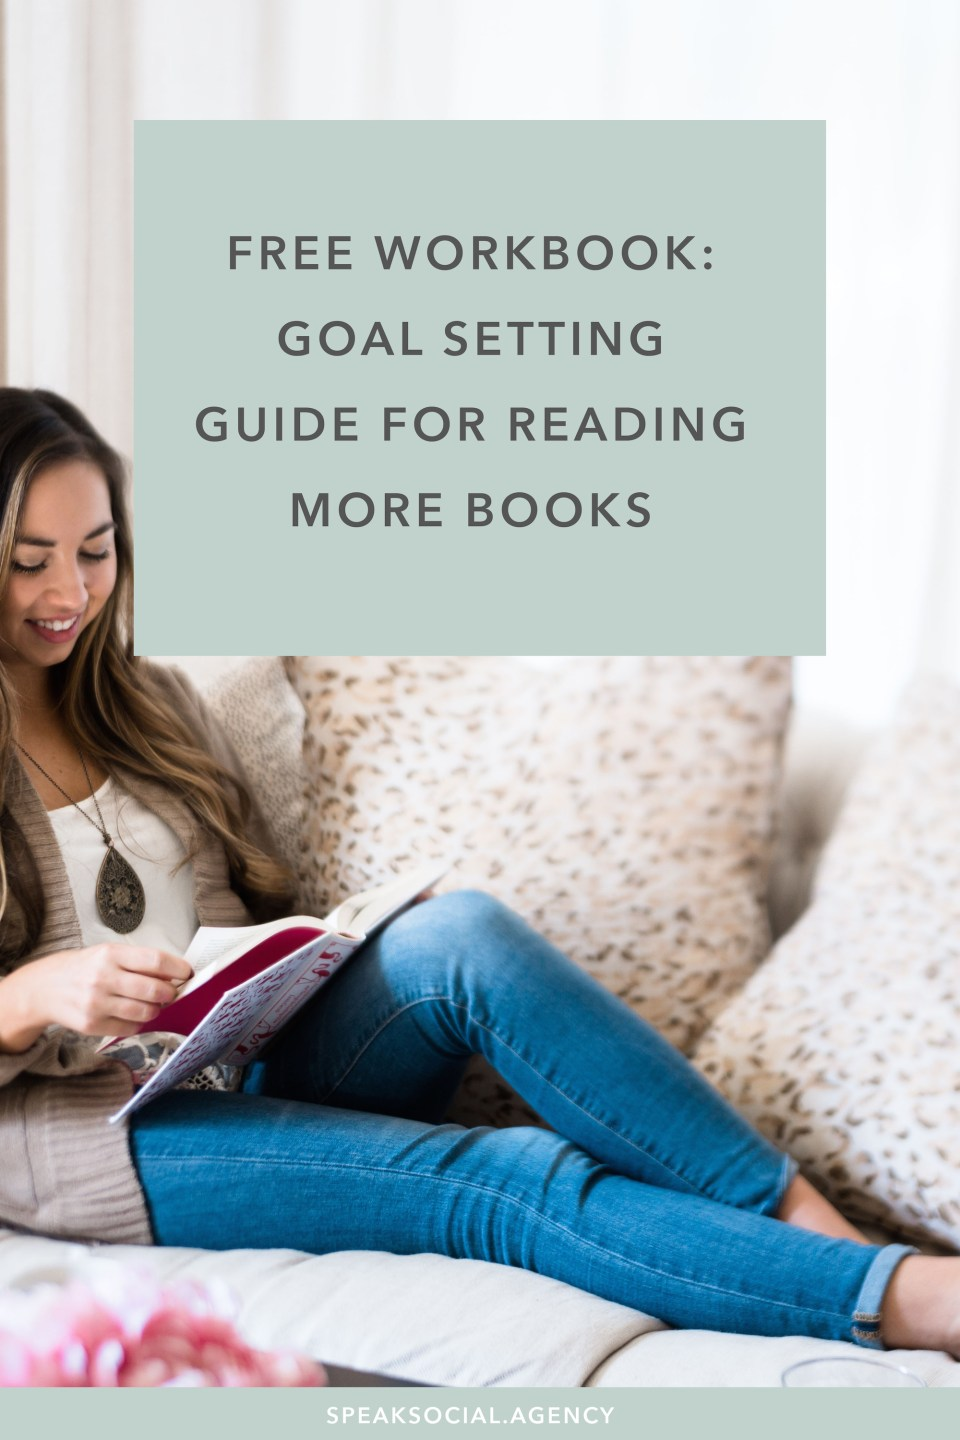 Goal Setting Guide for reading more books!